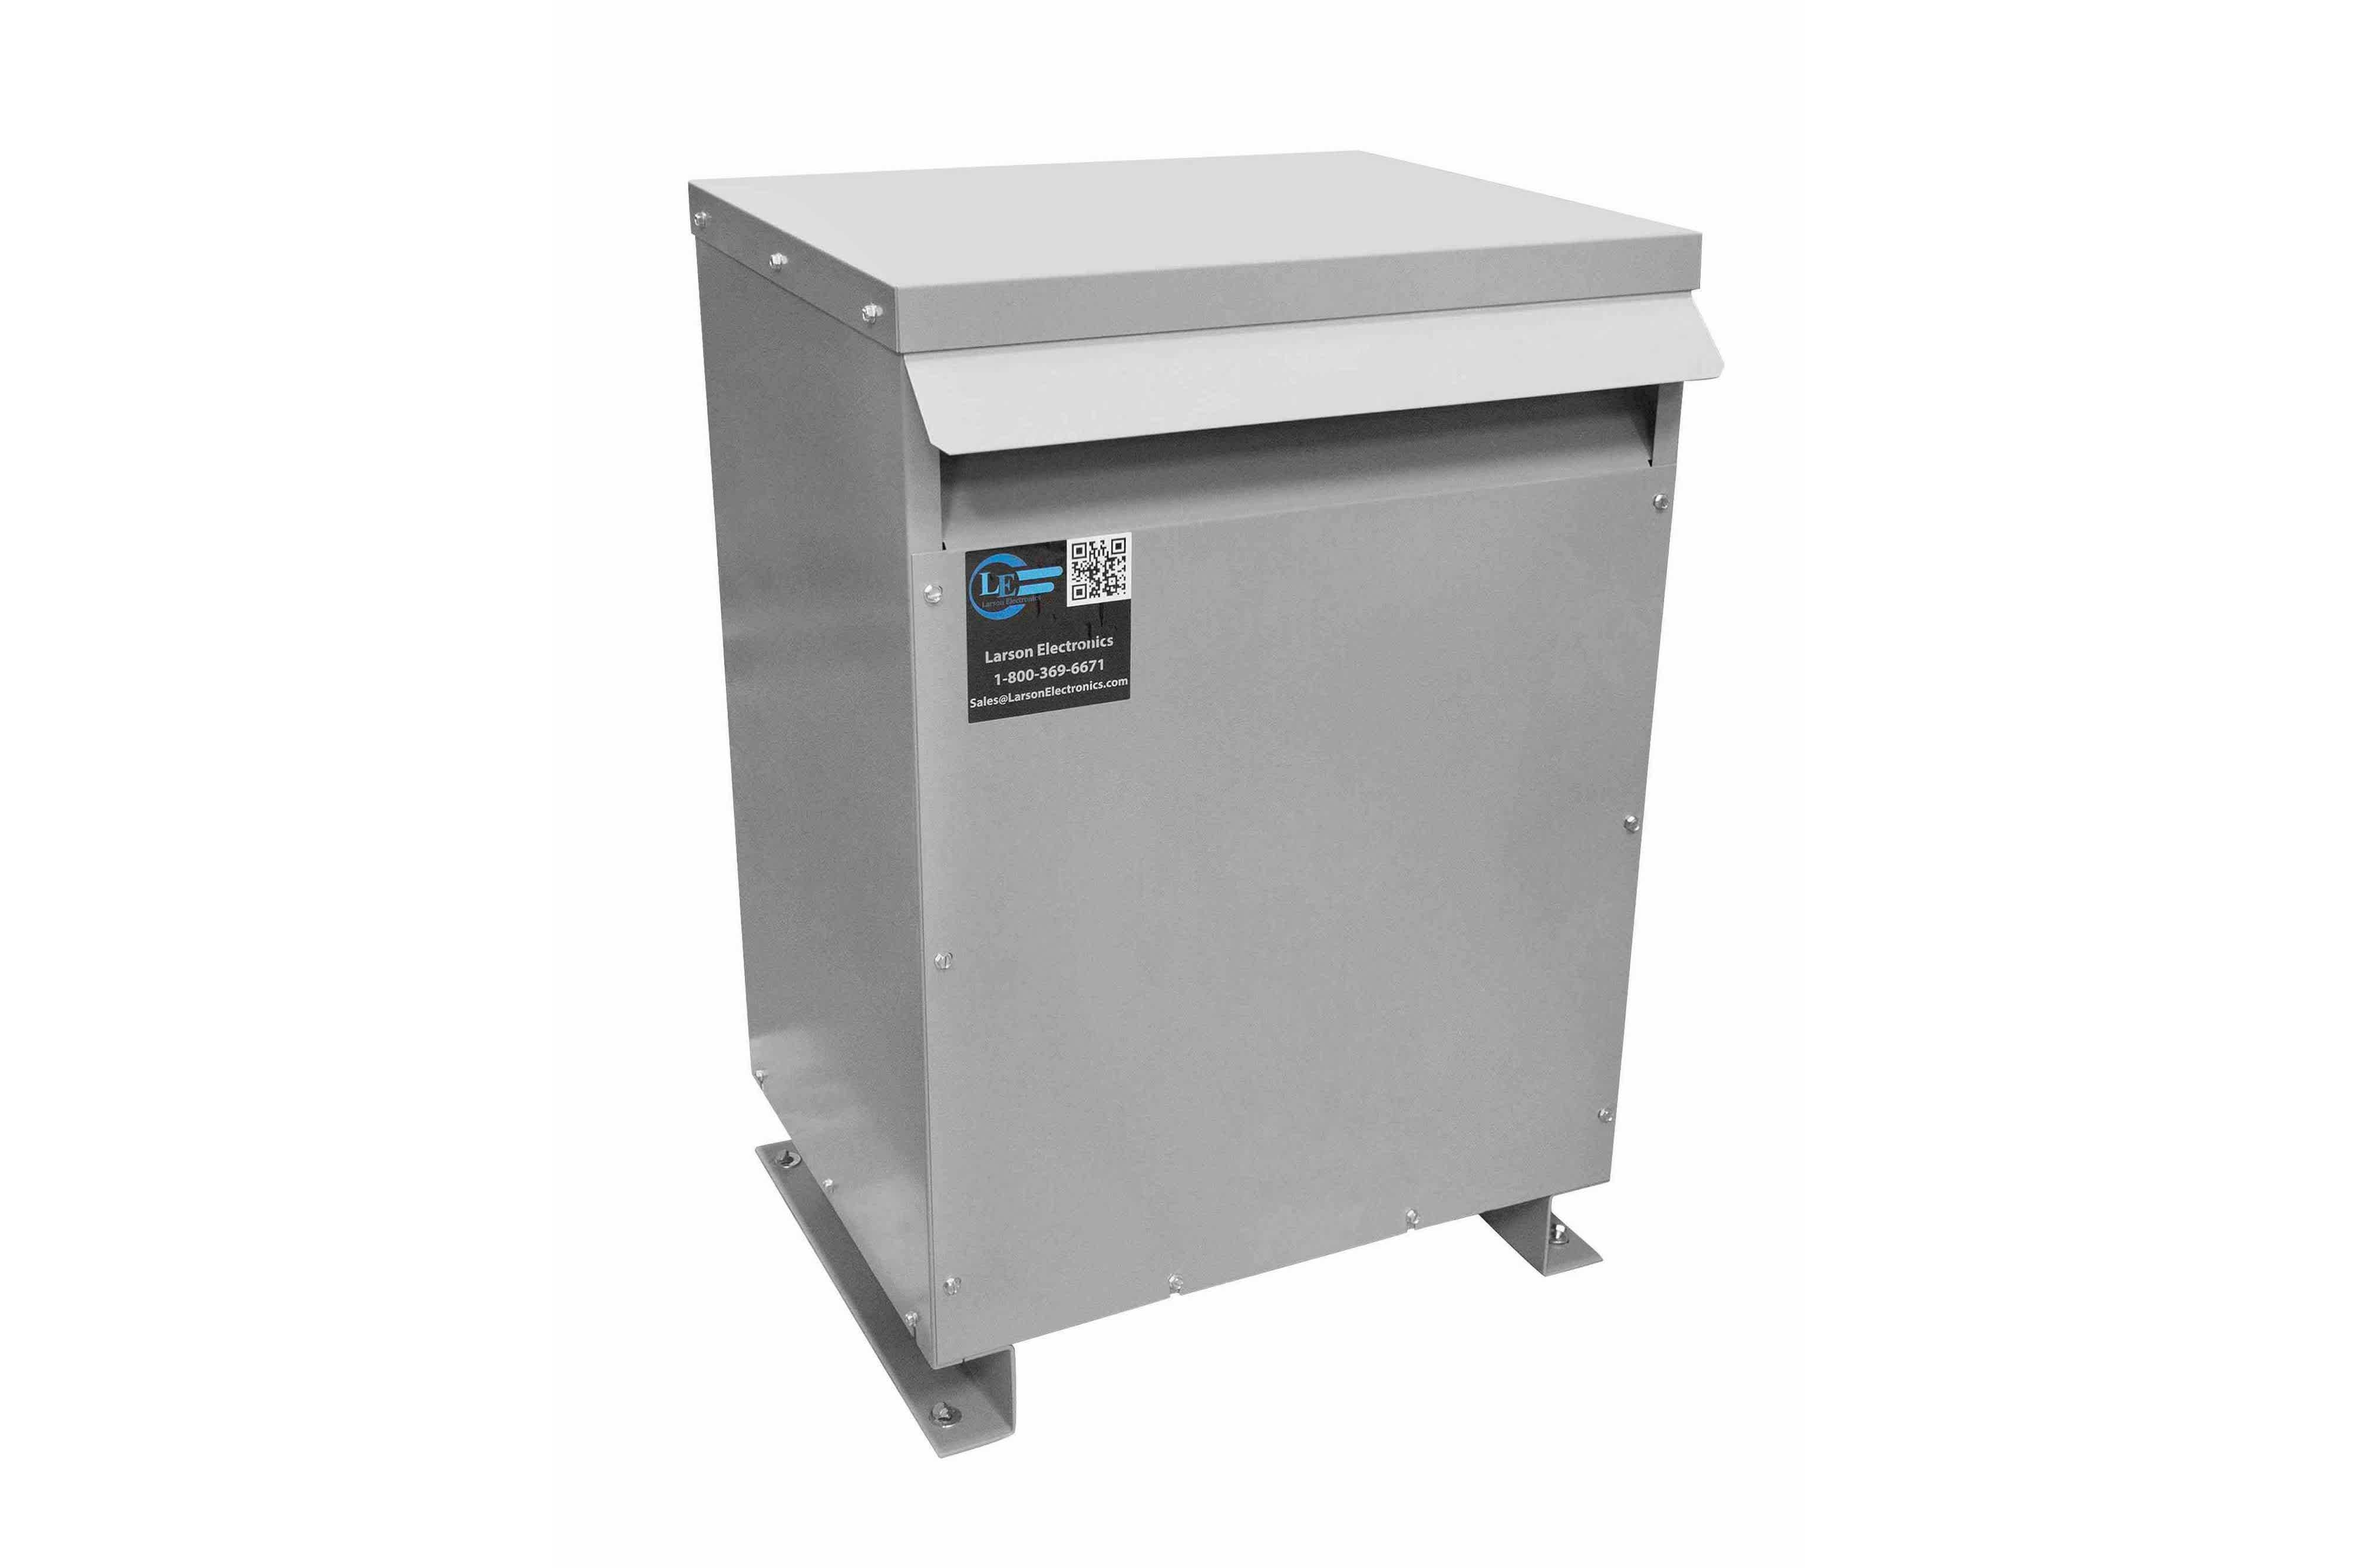 26 kVA 3PH Isolation Transformer, 480V Delta Primary, 600V Delta Secondary, N3R, Ventilated, 60 Hz